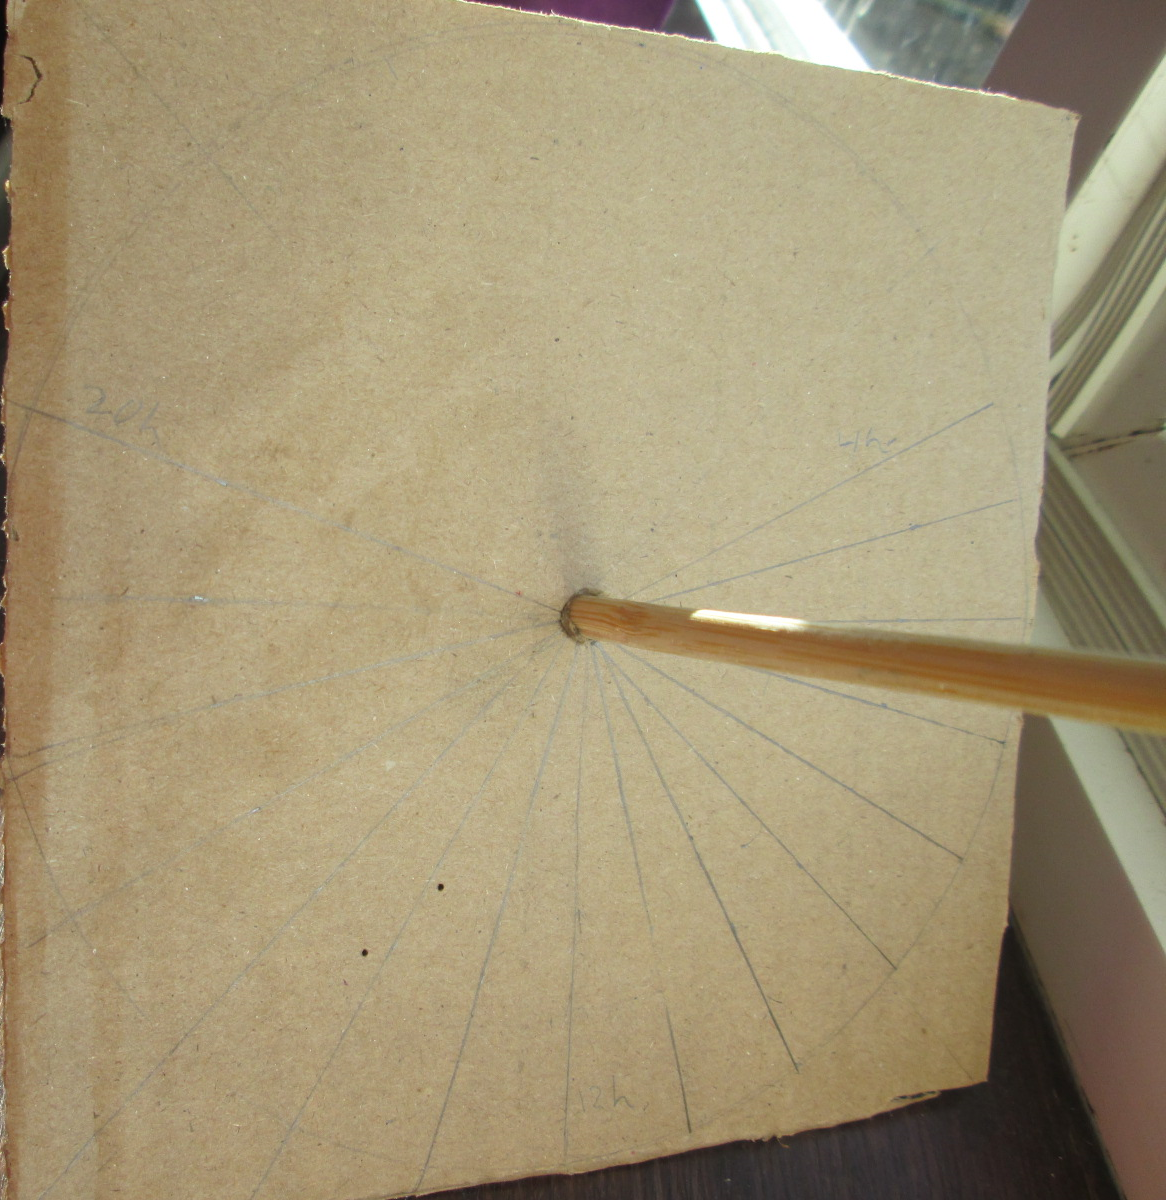 The gnomon is now stuck through the plane of the sundial.